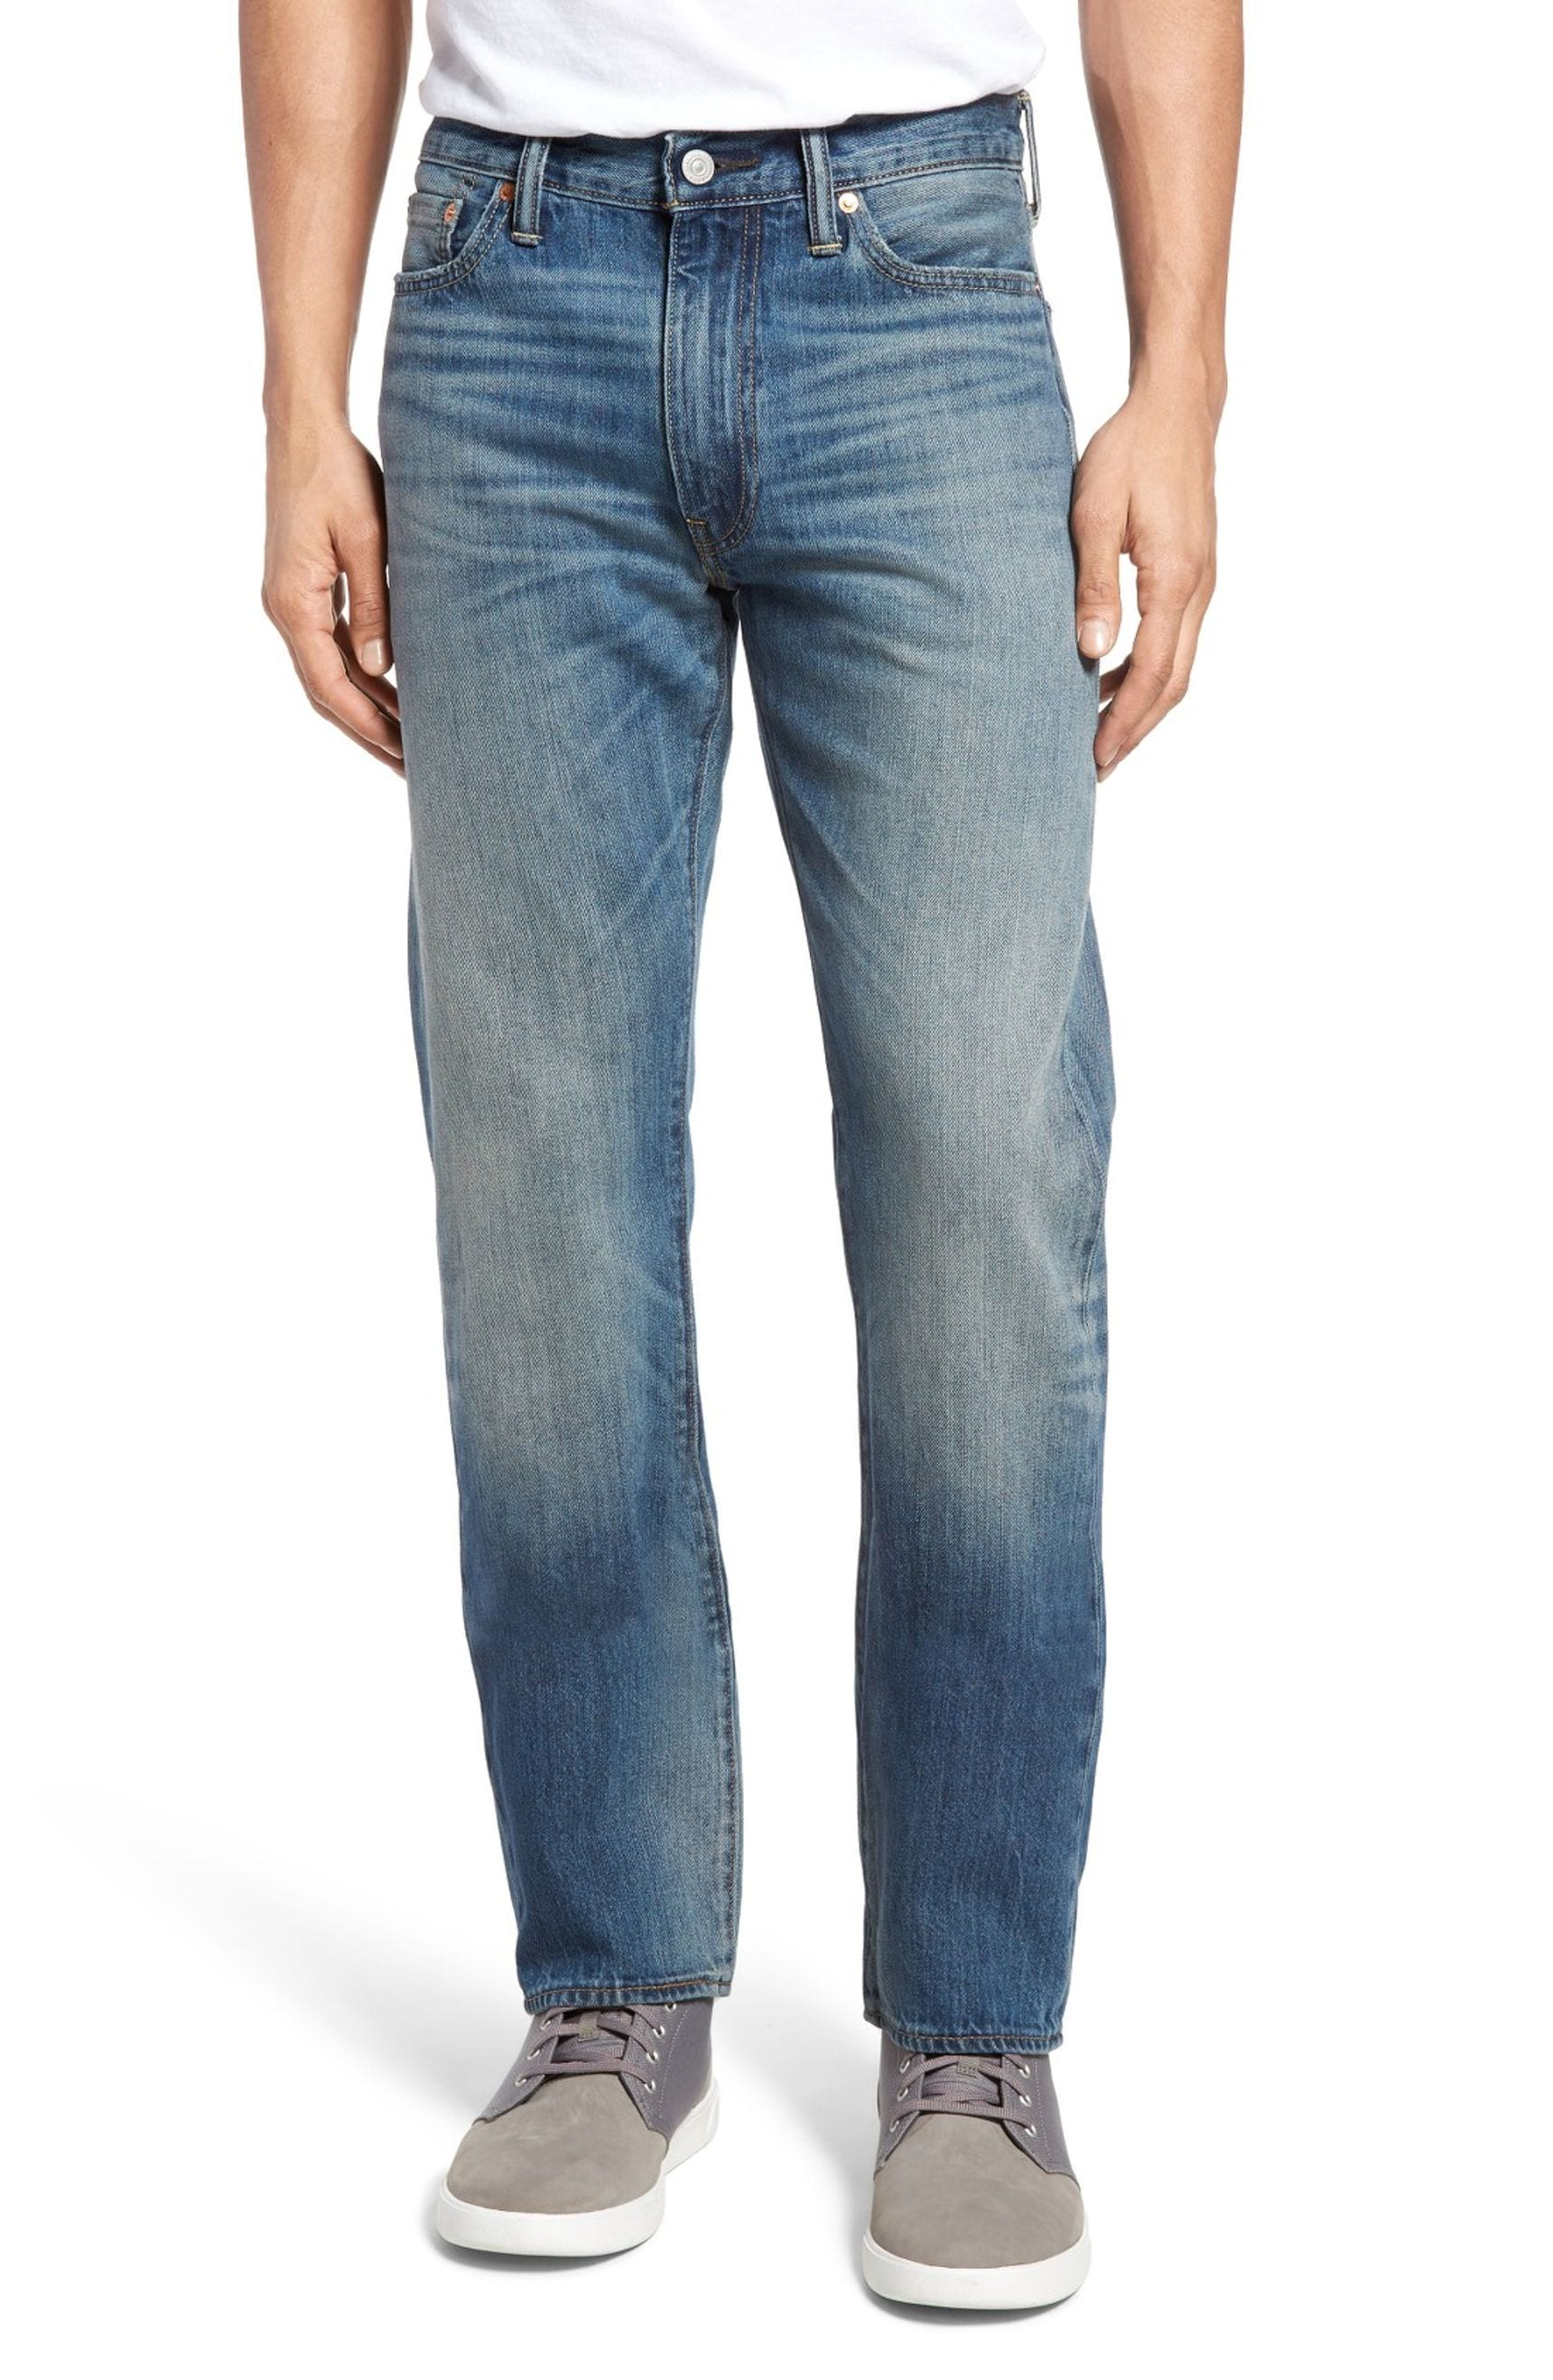 Jeans for Men 2017: Levi 511 Slim Fit